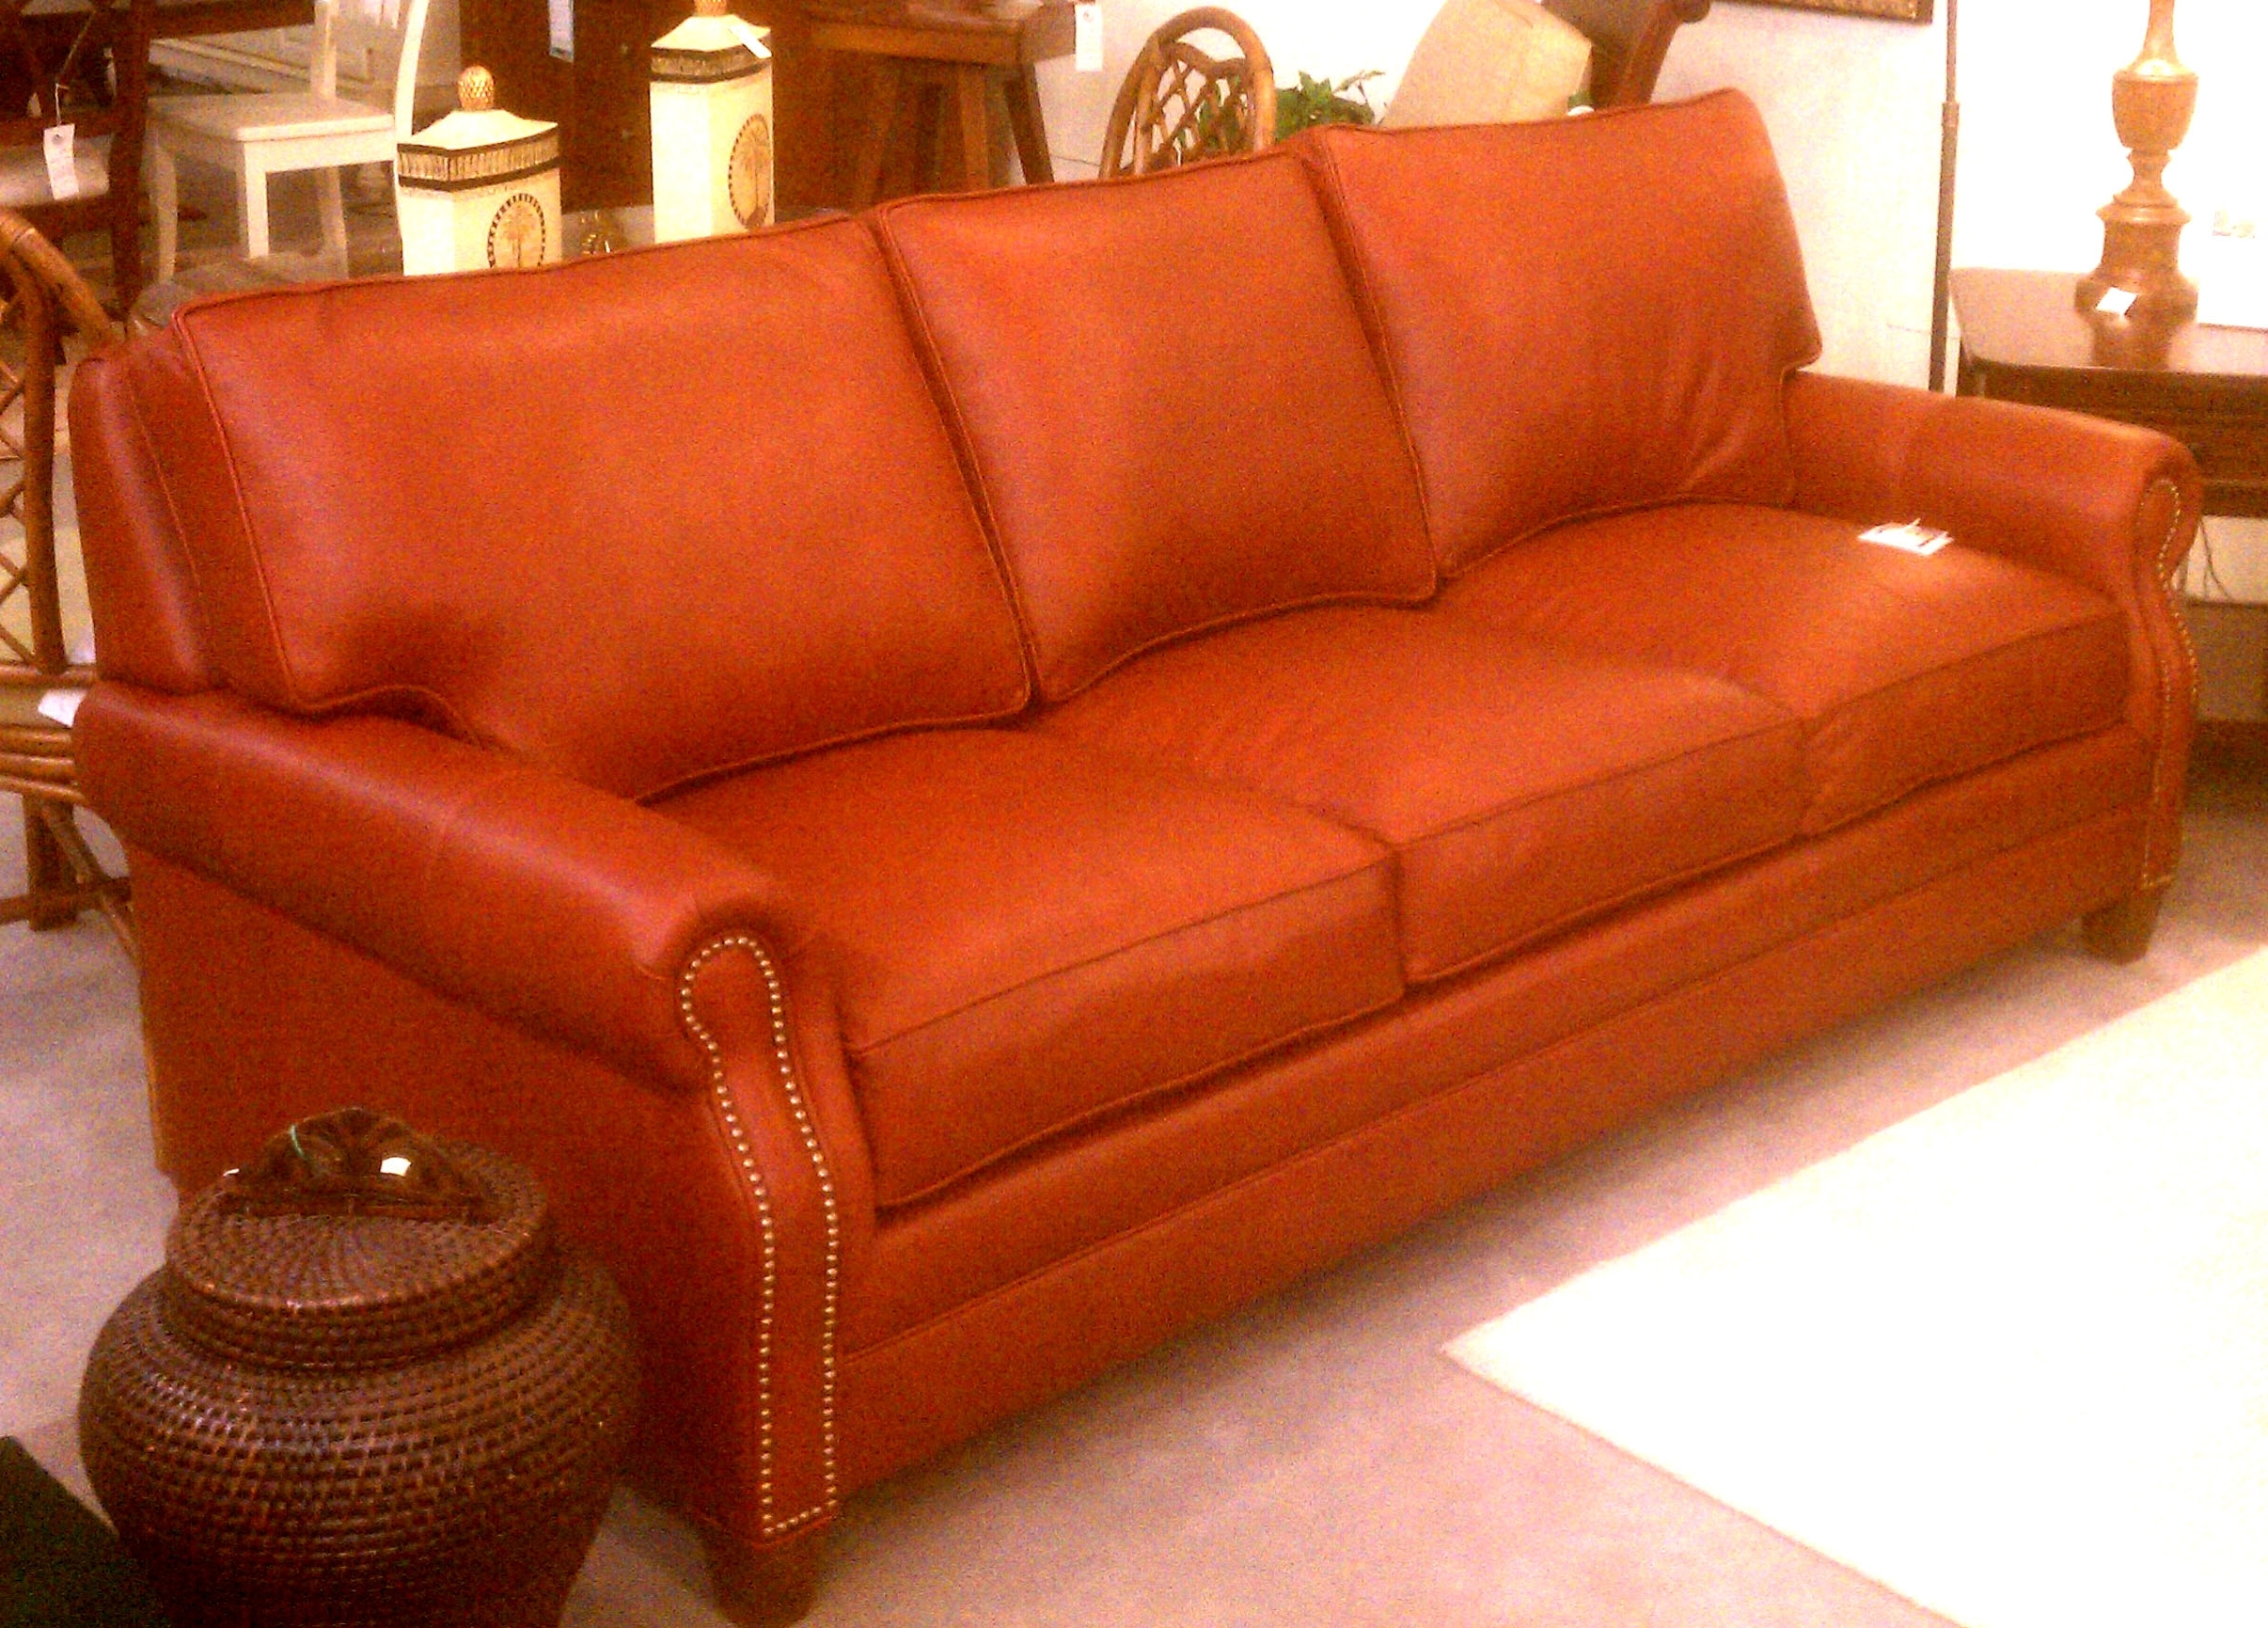 Custom Leather Sofa Dallas Vancouver Furniture Canada Singapore Tx Throughout Most Recent Made In North Carolina Sectional Sofas (View 12 of 20)